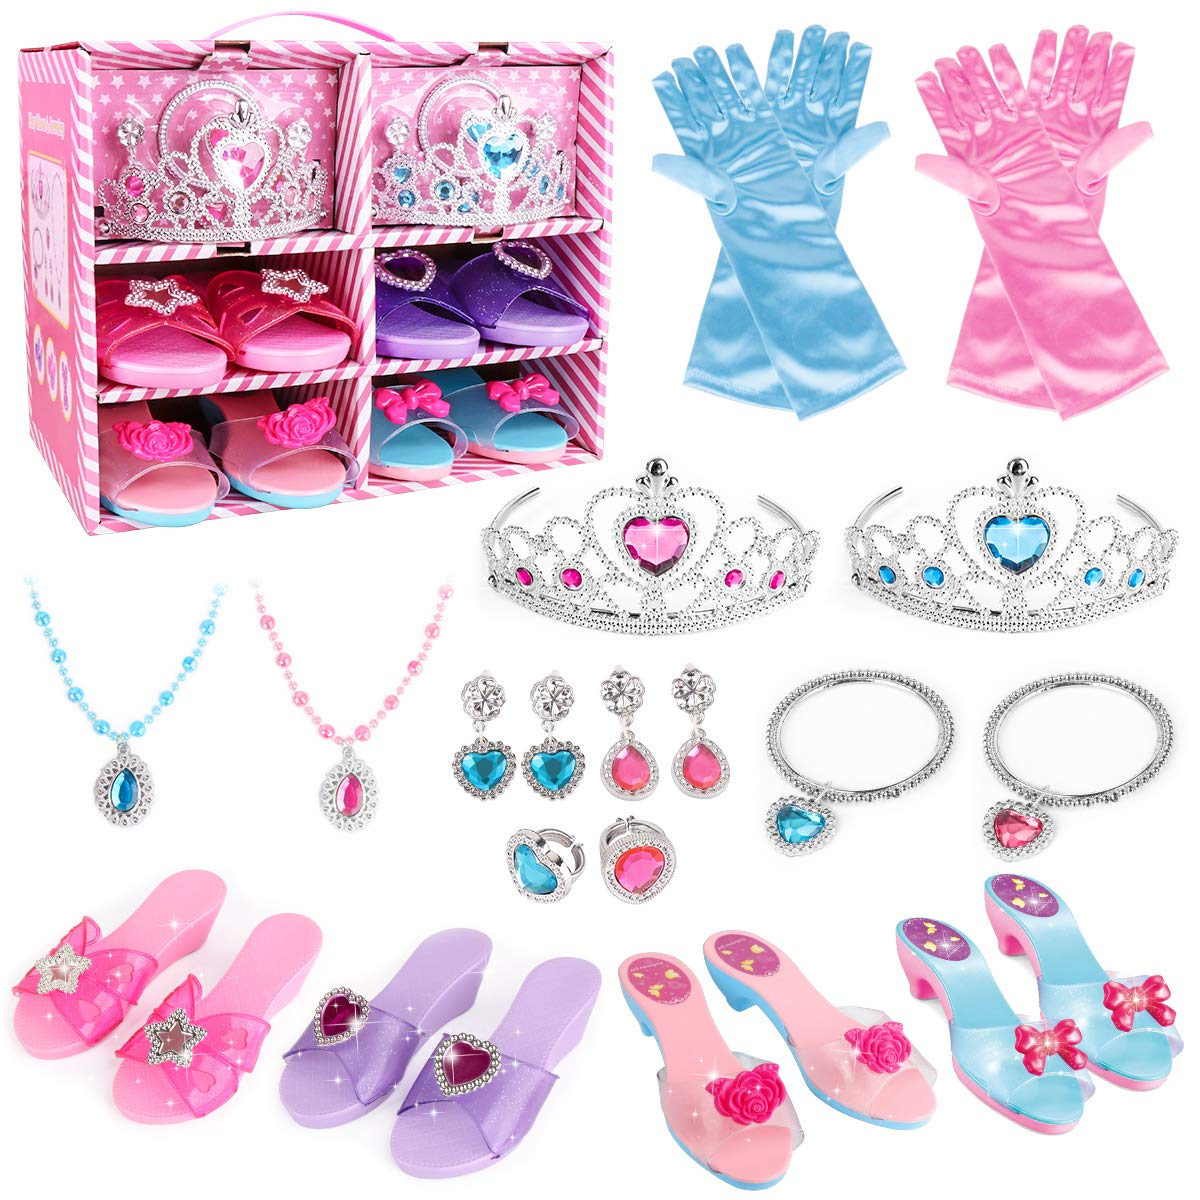 Princess Dress Up Shoes and Jewelry Boutique - 4 Pairs of Play Shoes and Pretend Jewelry Toys Princess Accessories Play Gift Set for Toddlers Little Girls Aged 2,3,4,5,6 Years Old by Meland